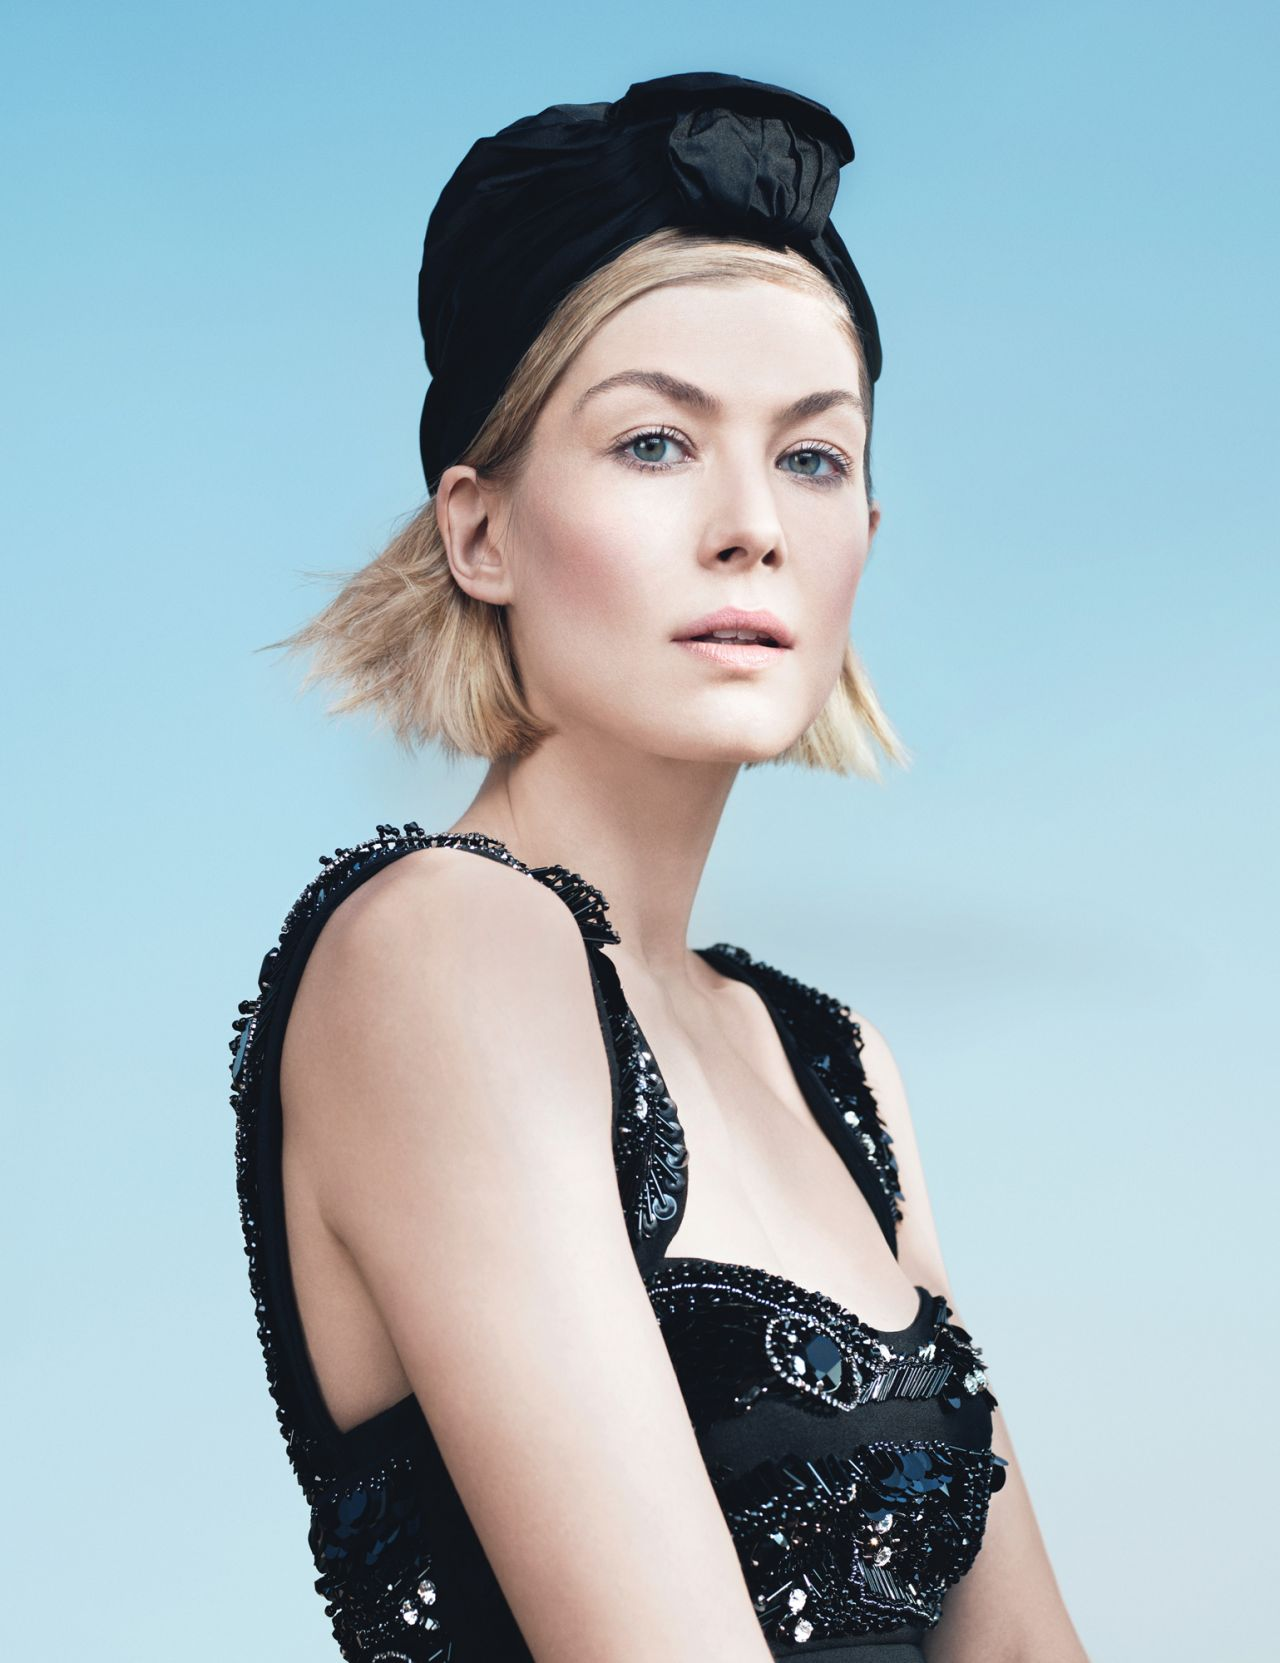 Rosamund Pike     W Magazine May 2014 Issue PhotoshootRosamund Pike 2014